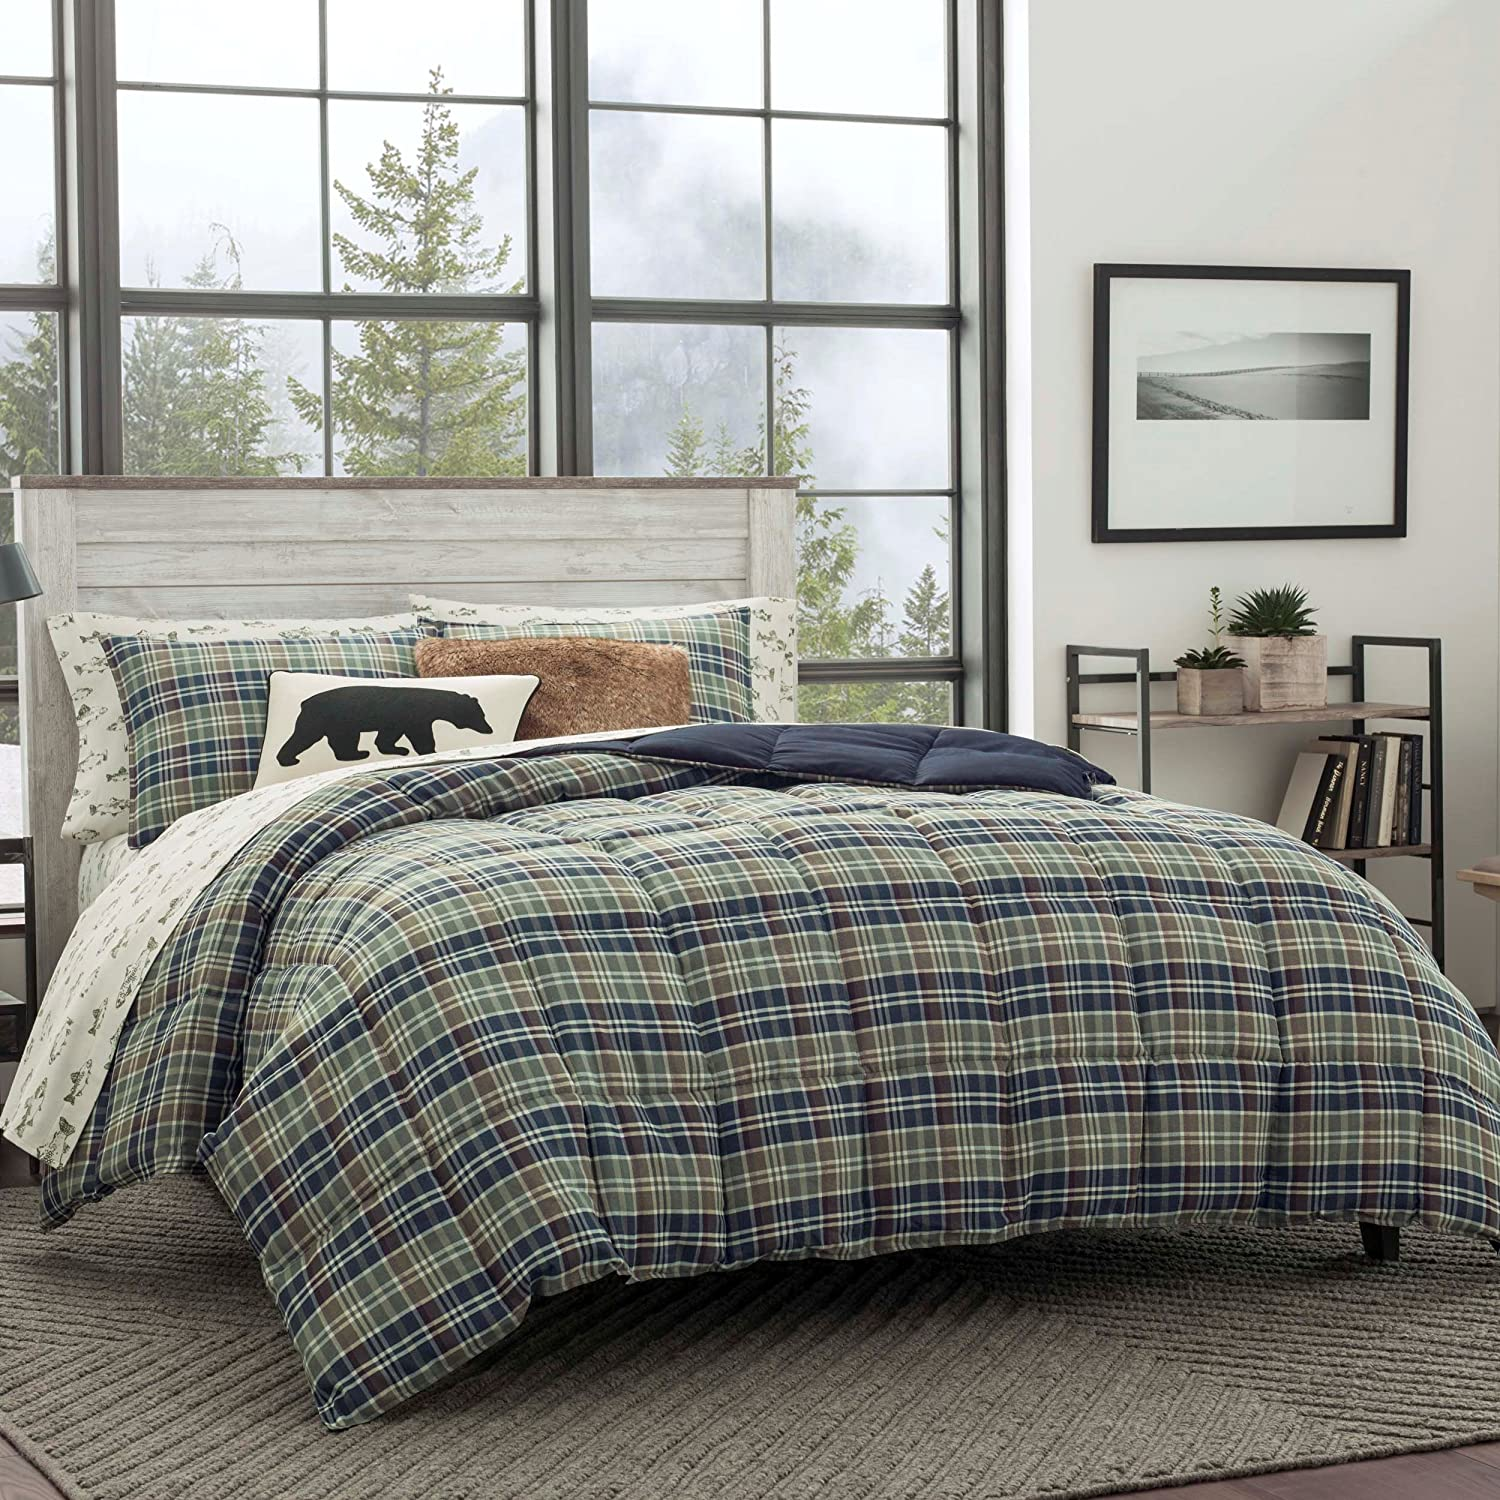 Eddie Bauer Rugged Plaid Comforter Set, King, Navy Blue